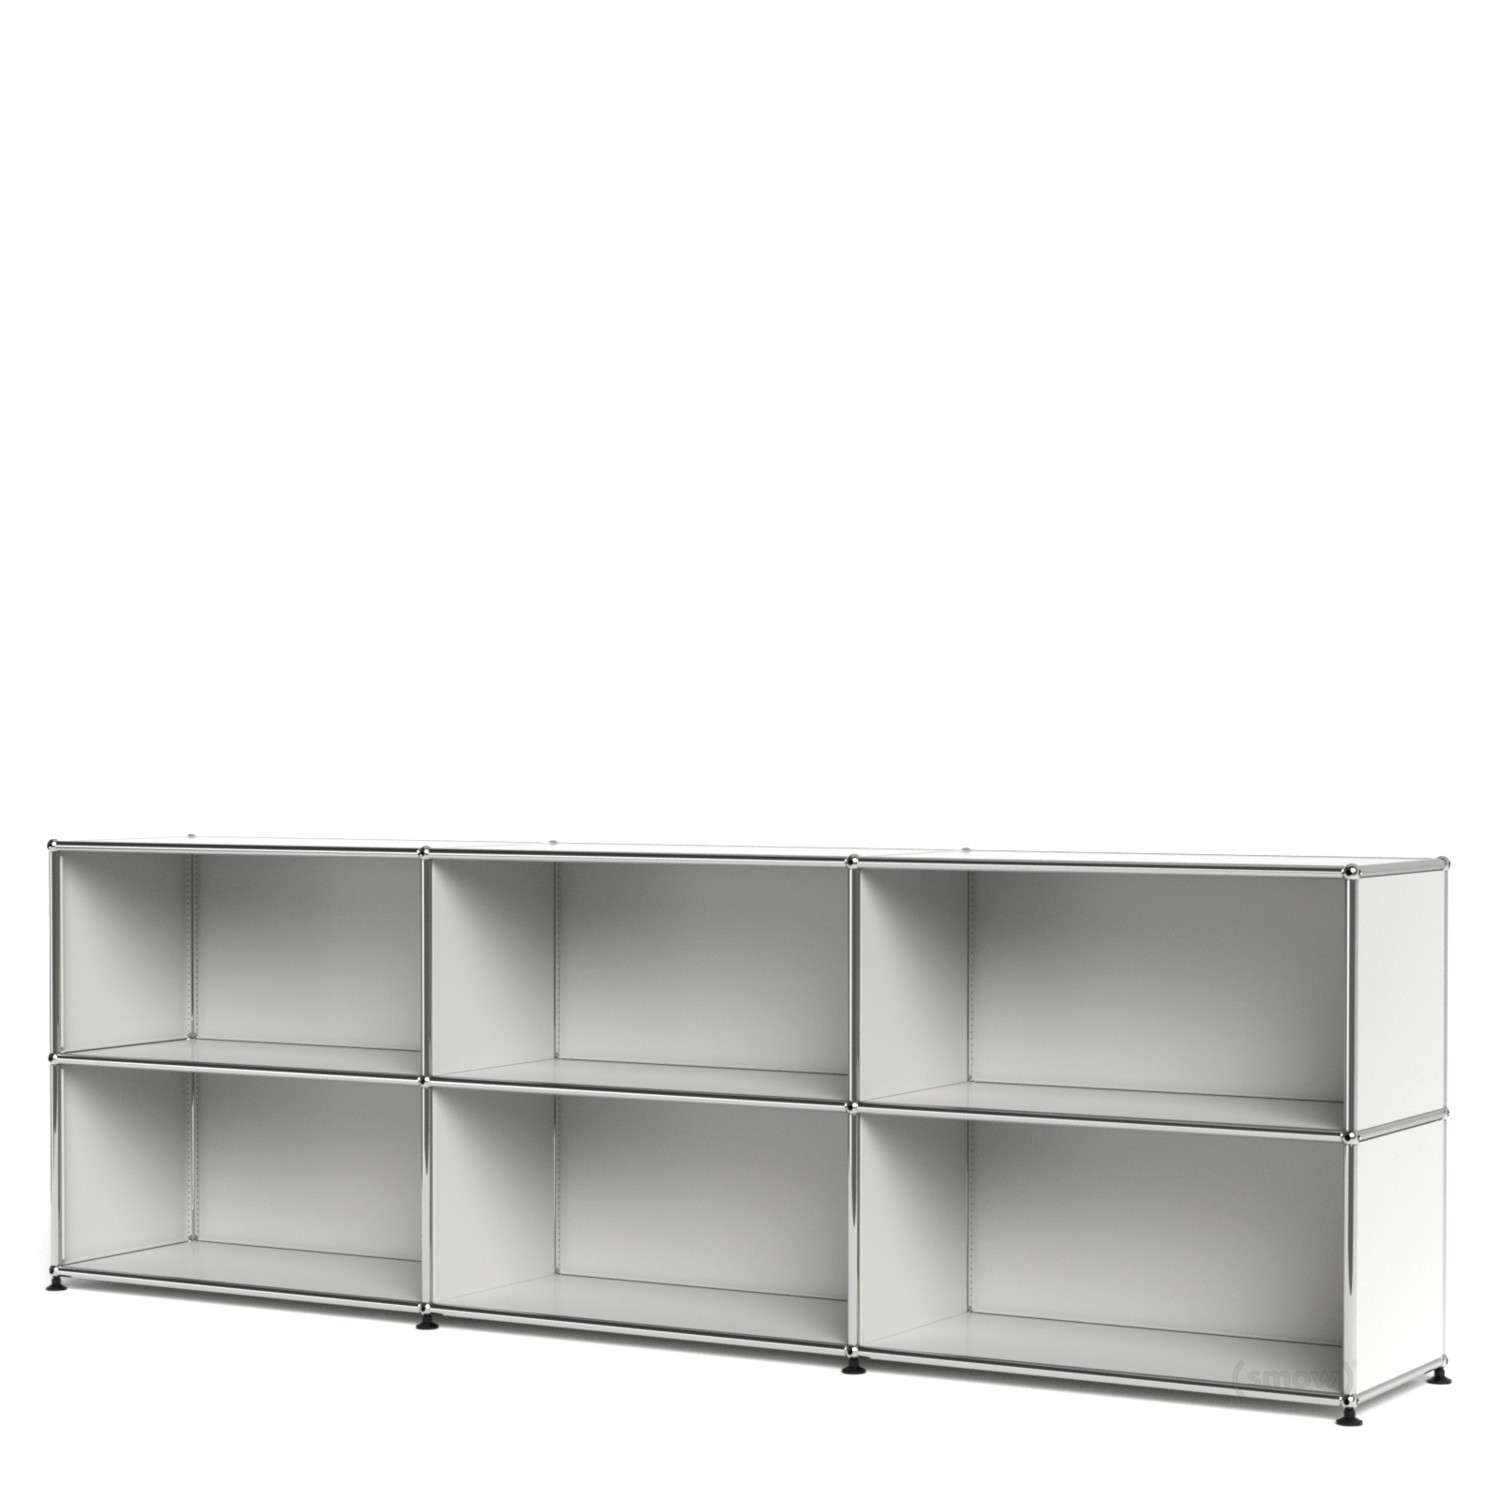 usm haller sideboard xl customisable pure white ral 9010 open open by fritz haller paul. Black Bedroom Furniture Sets. Home Design Ideas